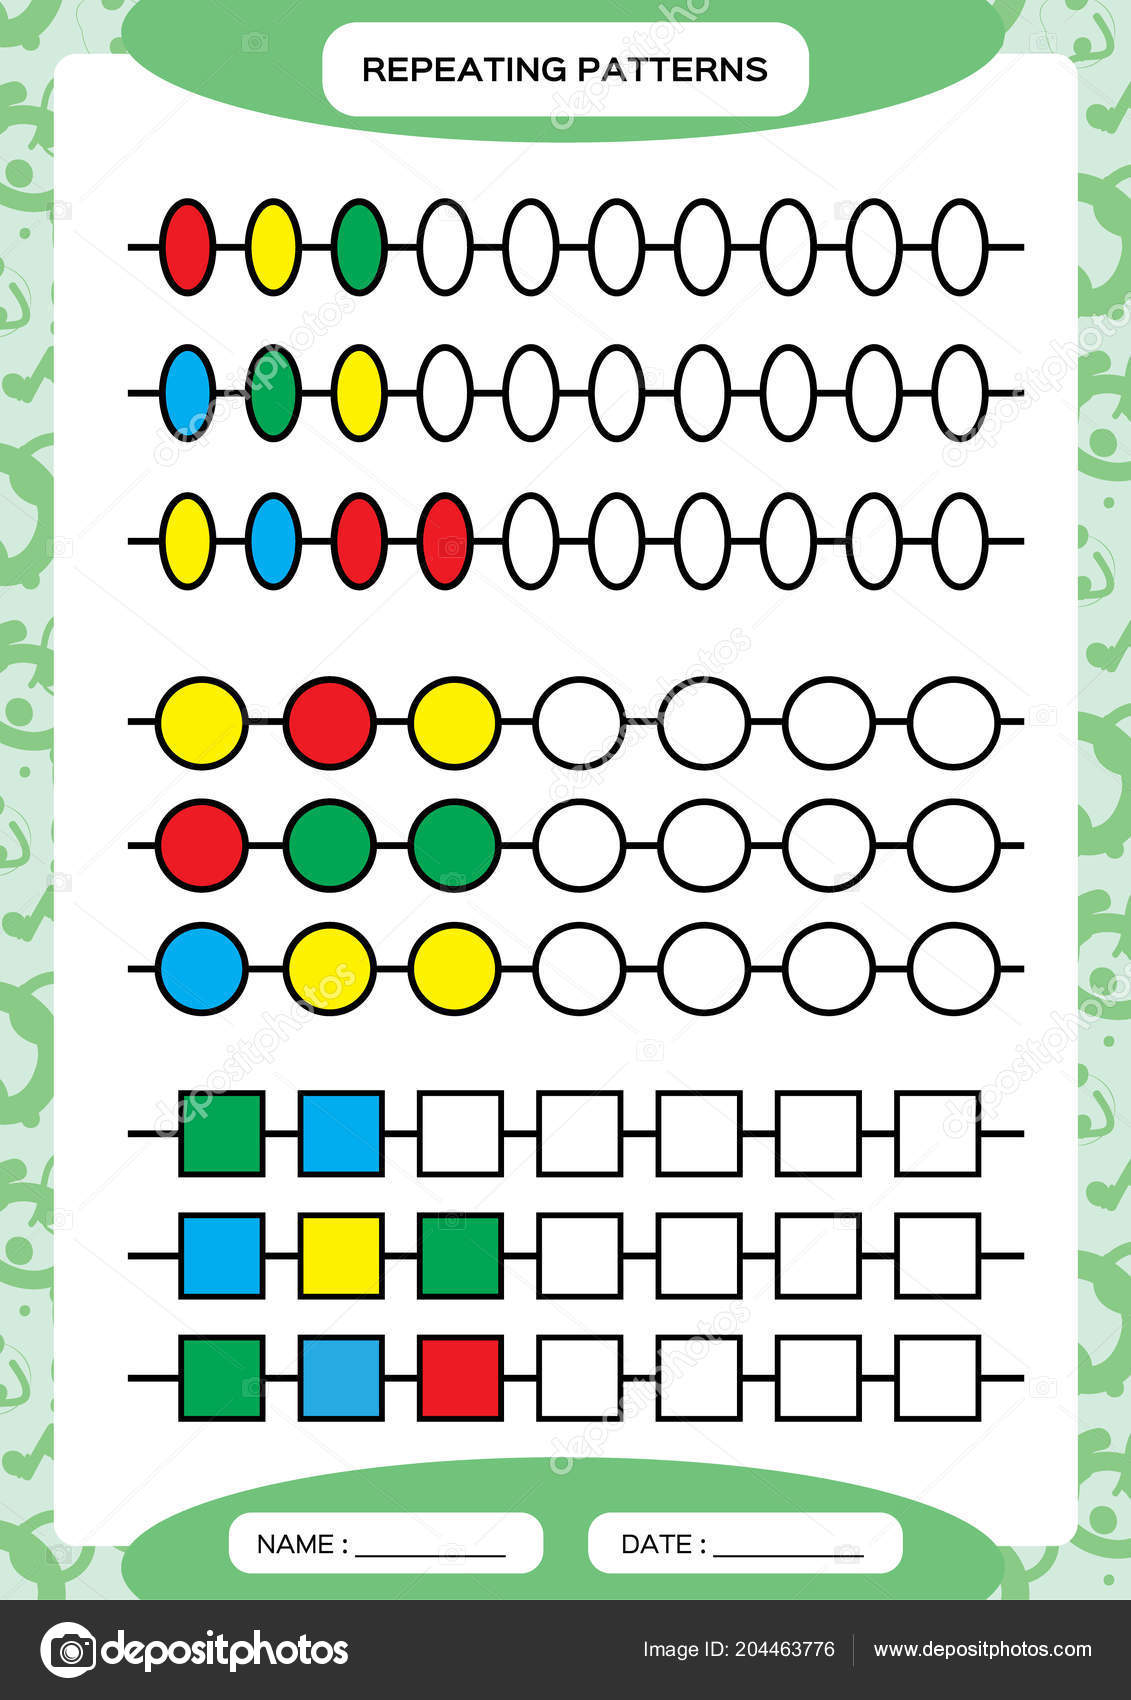 Repeated Patterns Worksheet